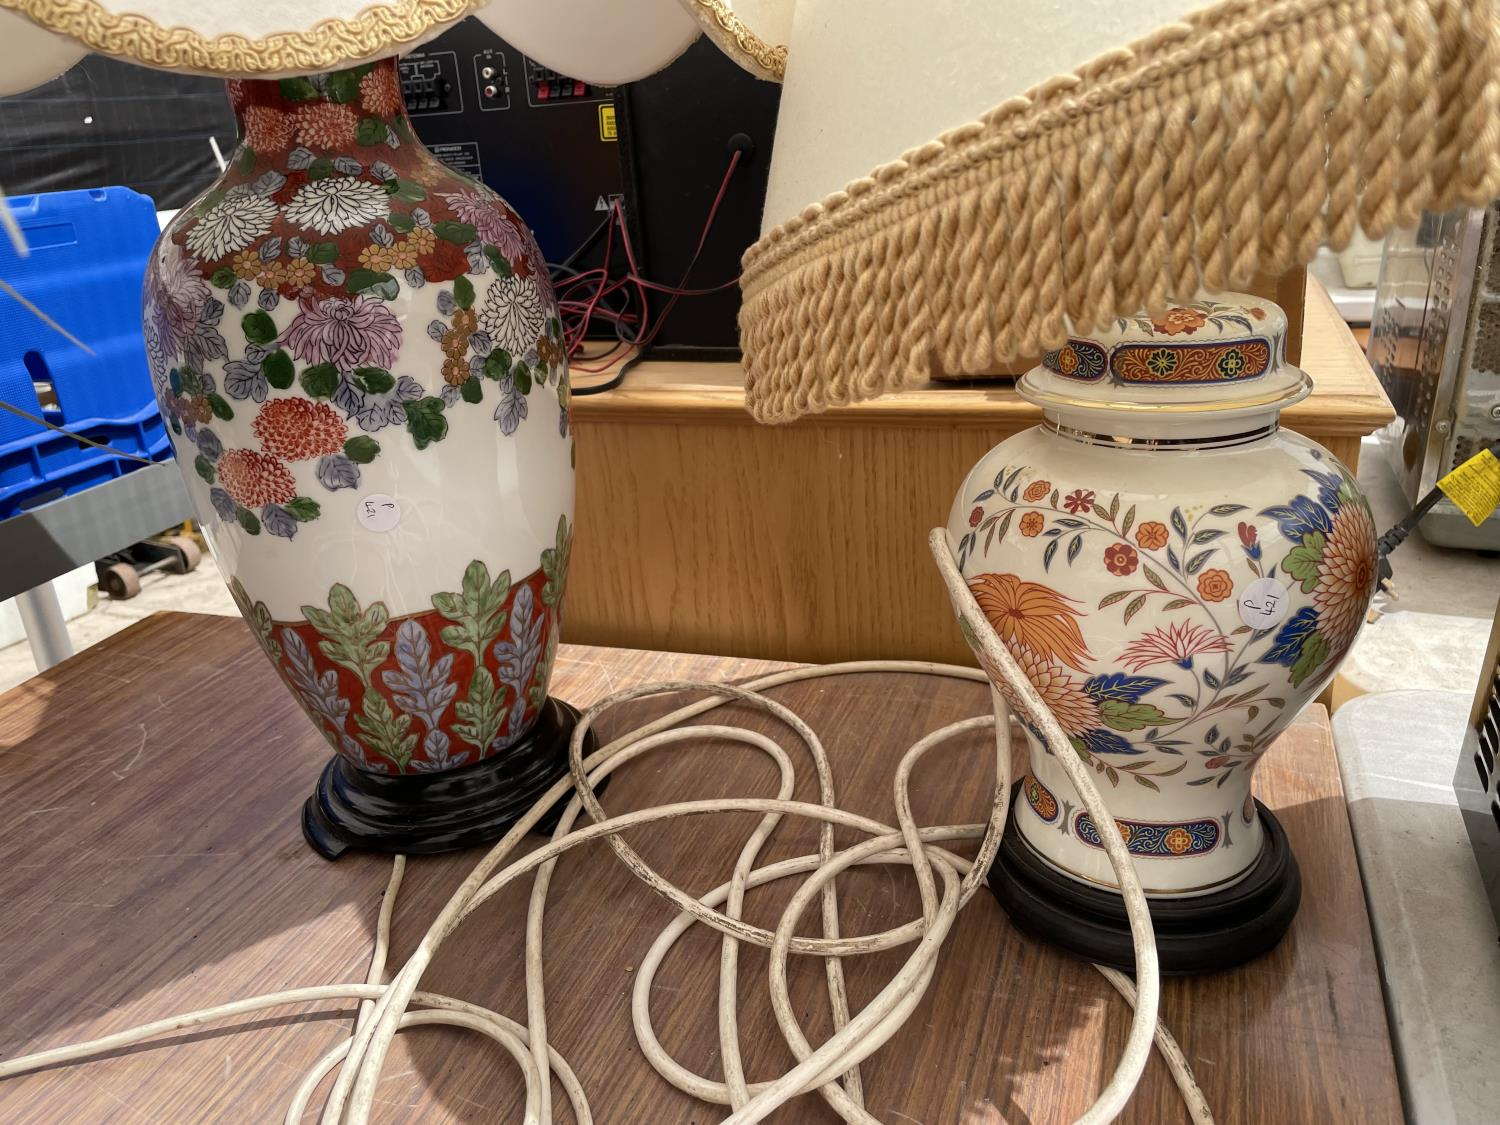 A VASE AND A PLANT POT CONTAINING ARTIFICIAL FLOWERS - Image 4 of 6